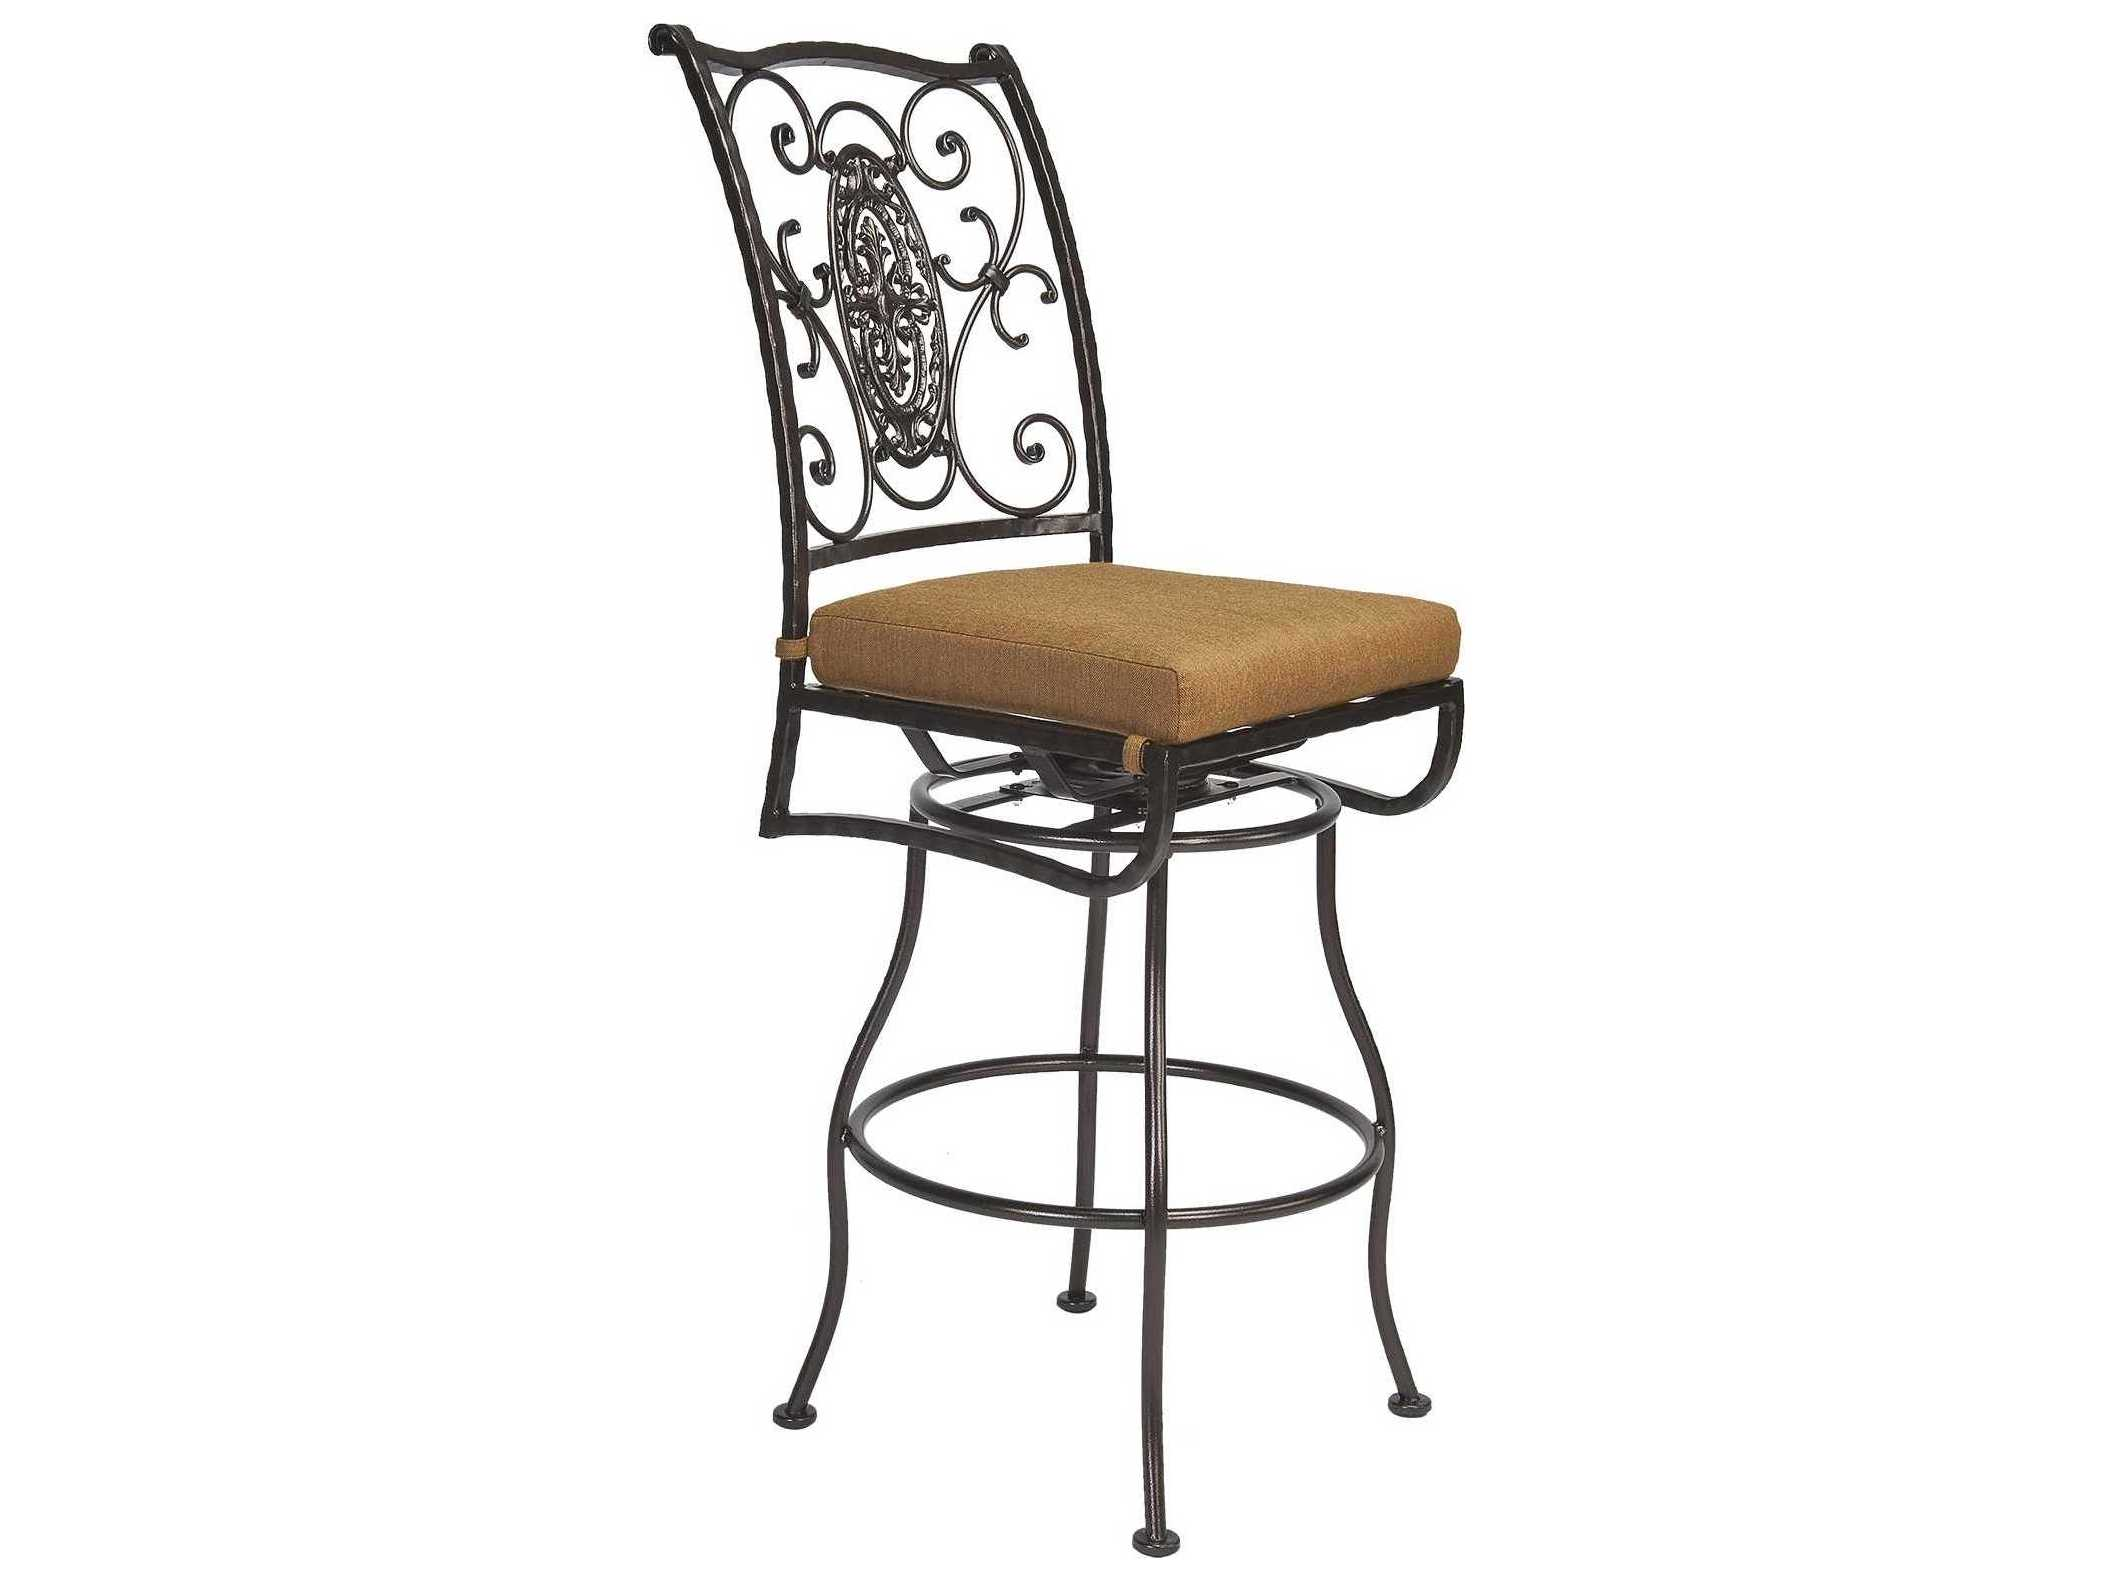 Ow Lee San Cristobal Swivel Bar Stool Replacement Cushions